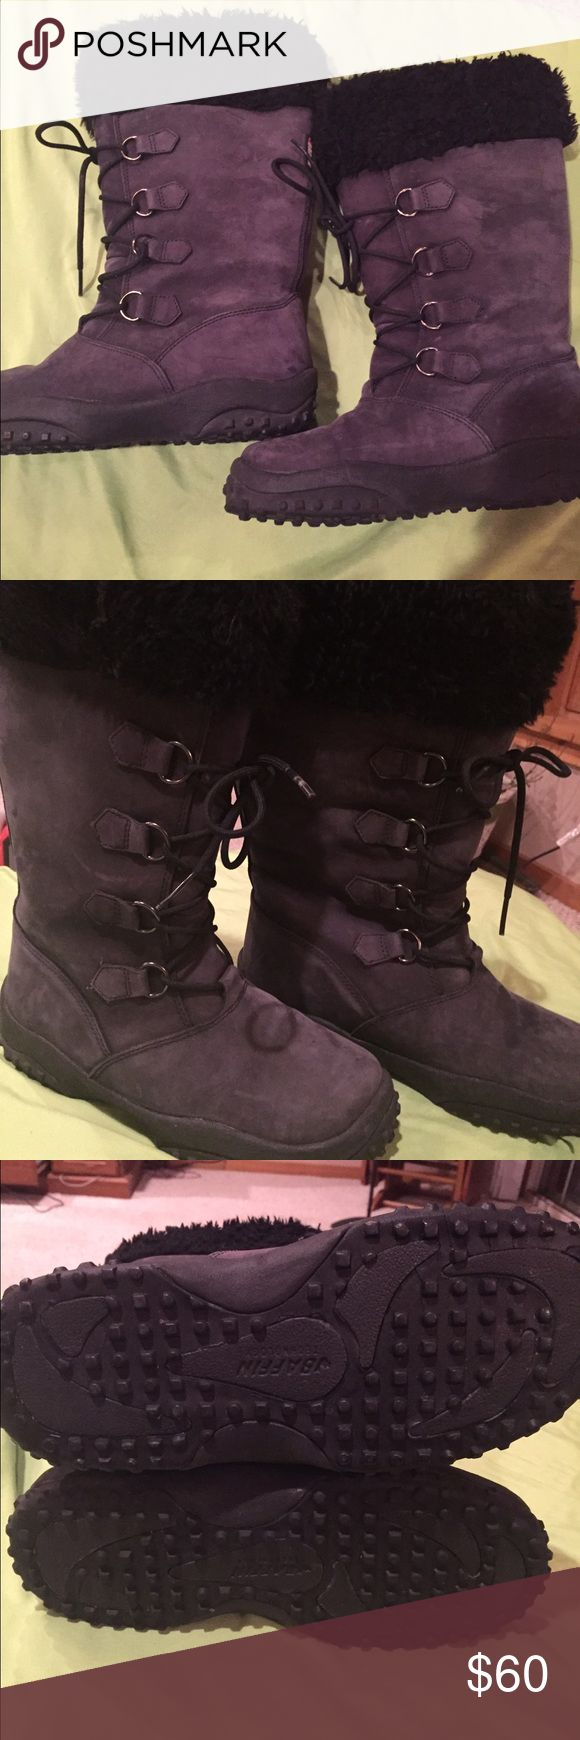 Euc! Woman's Baffin size 8 snow boots EUC! Worn 3 times. Woman's black Baffin snow boots. Size 8, with removable liner. Stylish and warm! Baffin Shoes Winter & Rain Boots